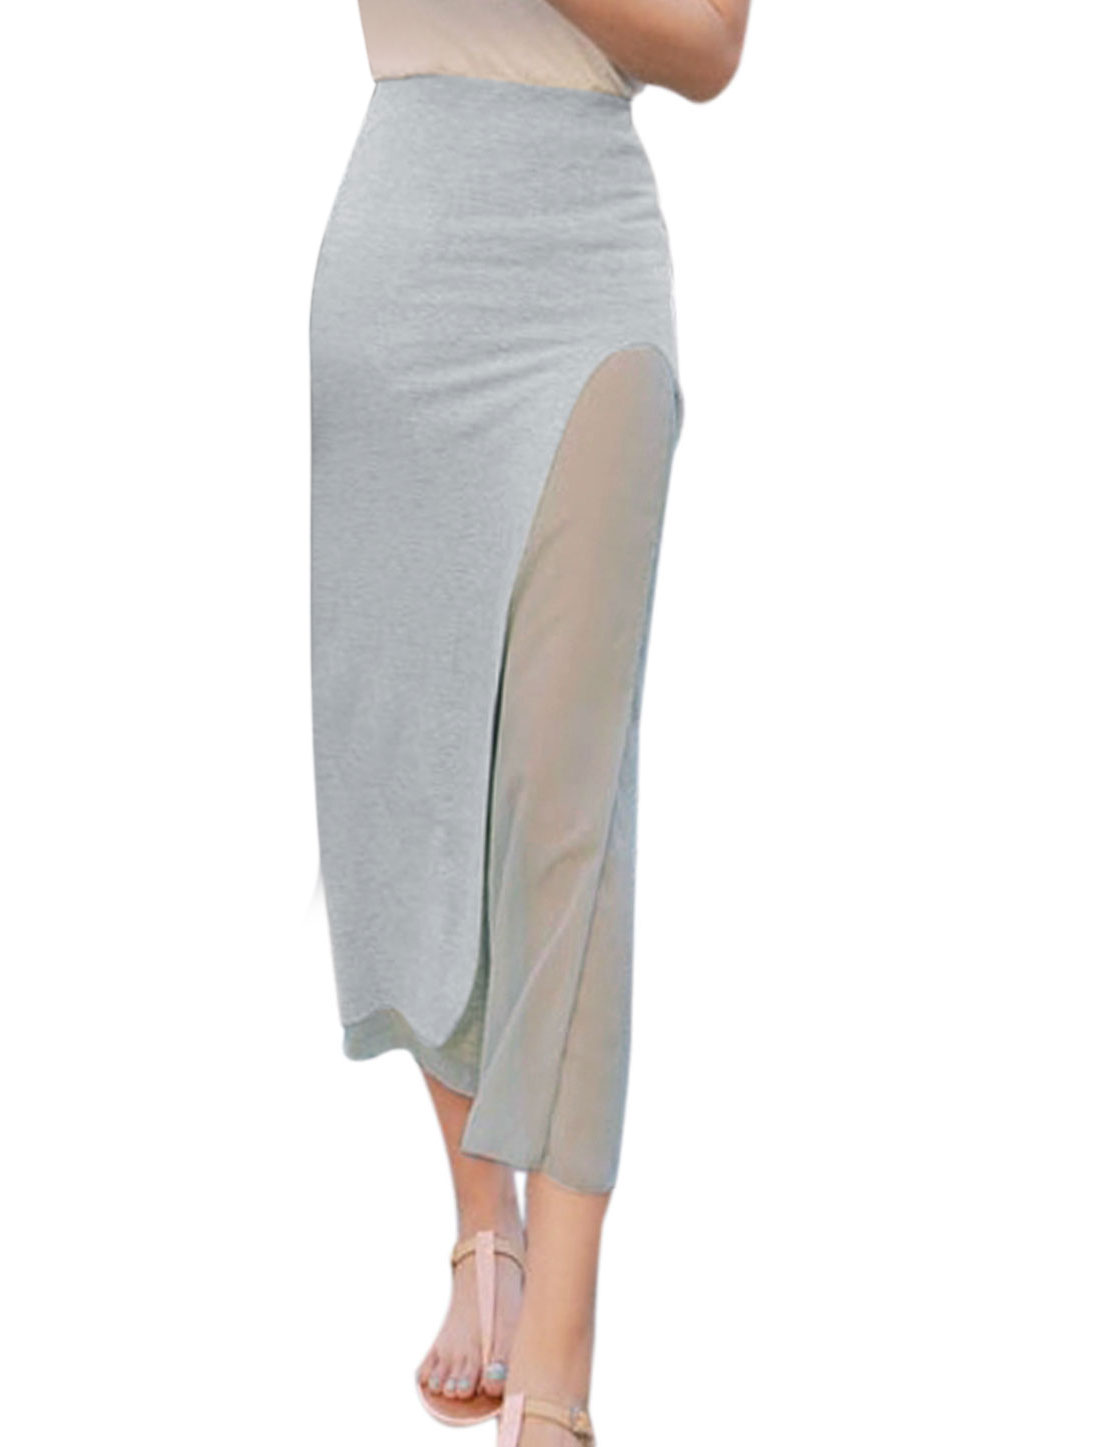 Ladies Soft Split Side Chiffon Lining Sheerness Skirt Light Gray S